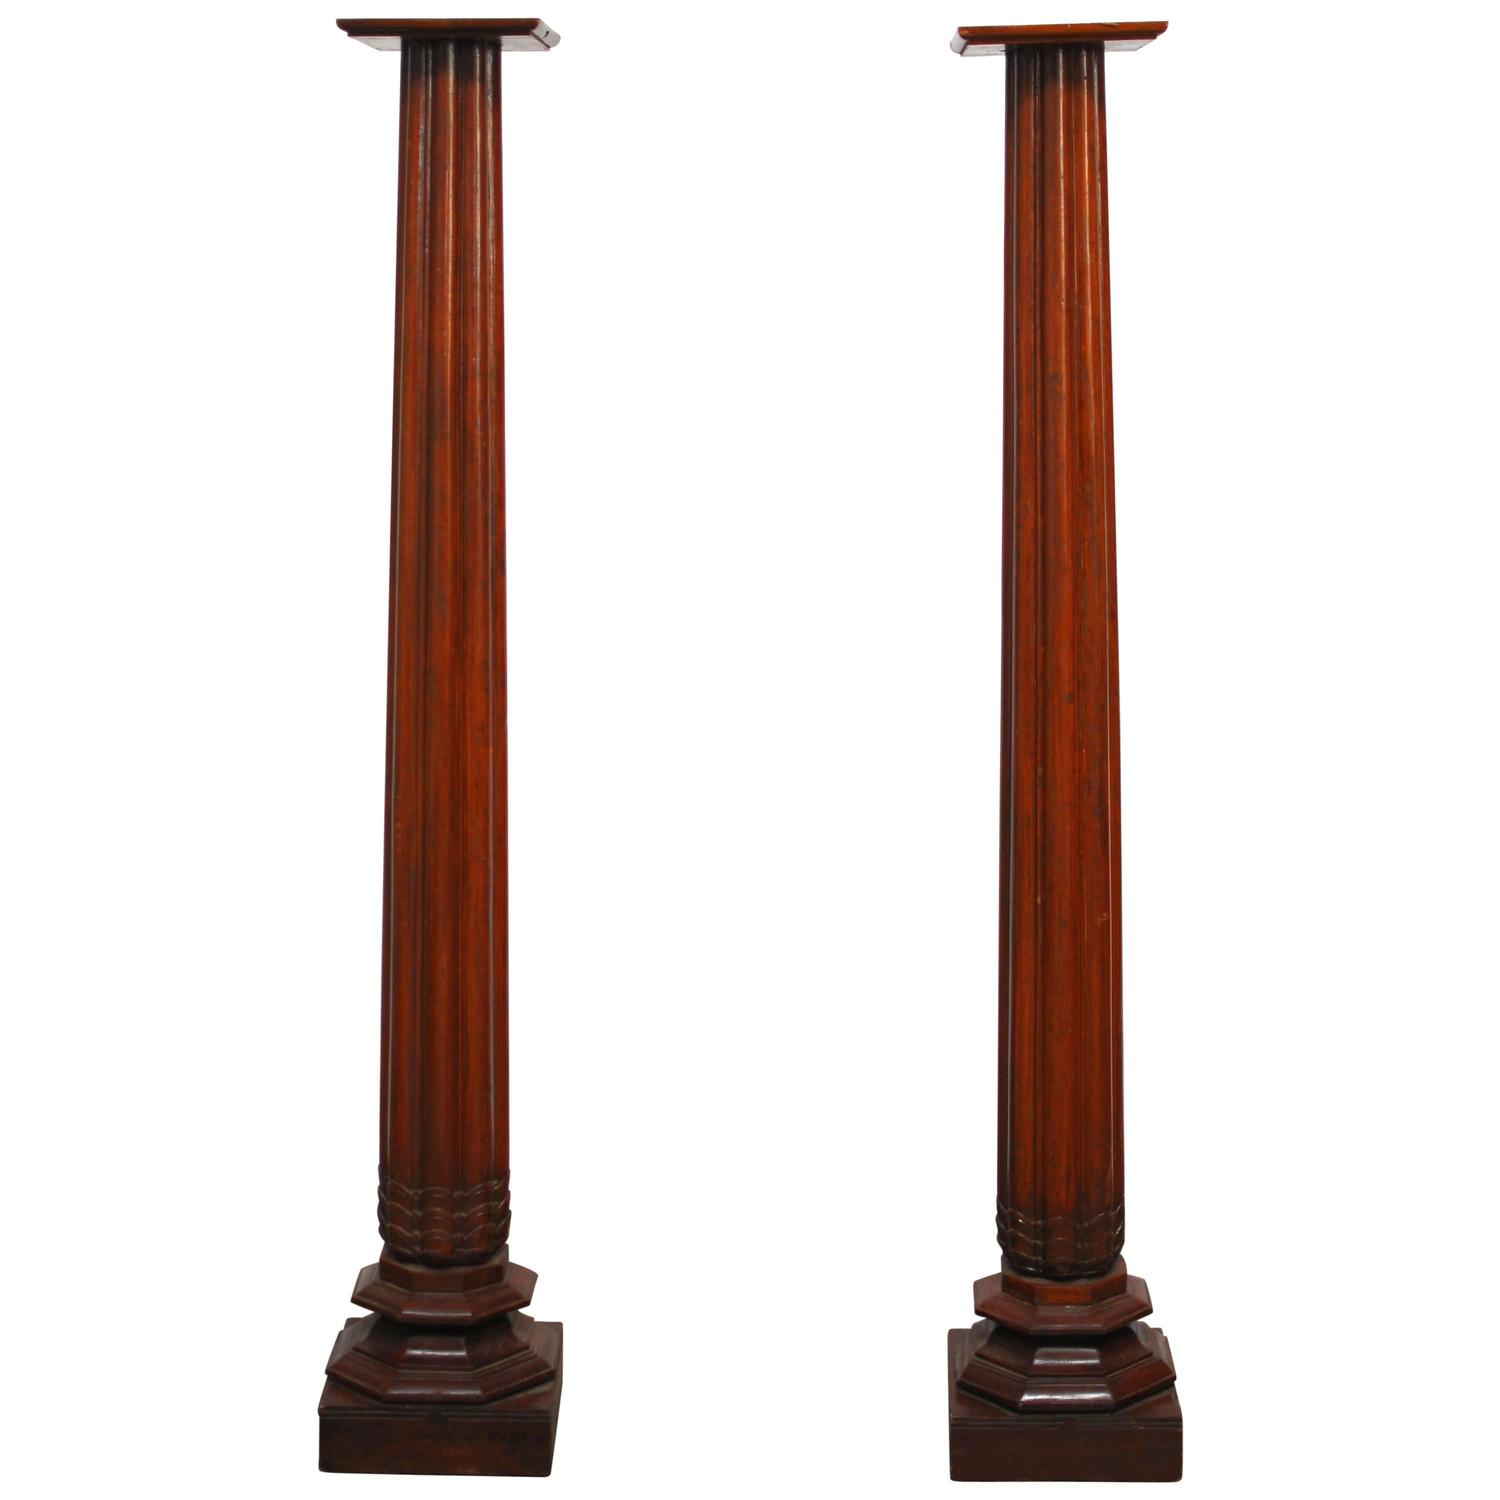 Anglo indian teak wood architectural columns at 1stdibs for Architectural wood columns